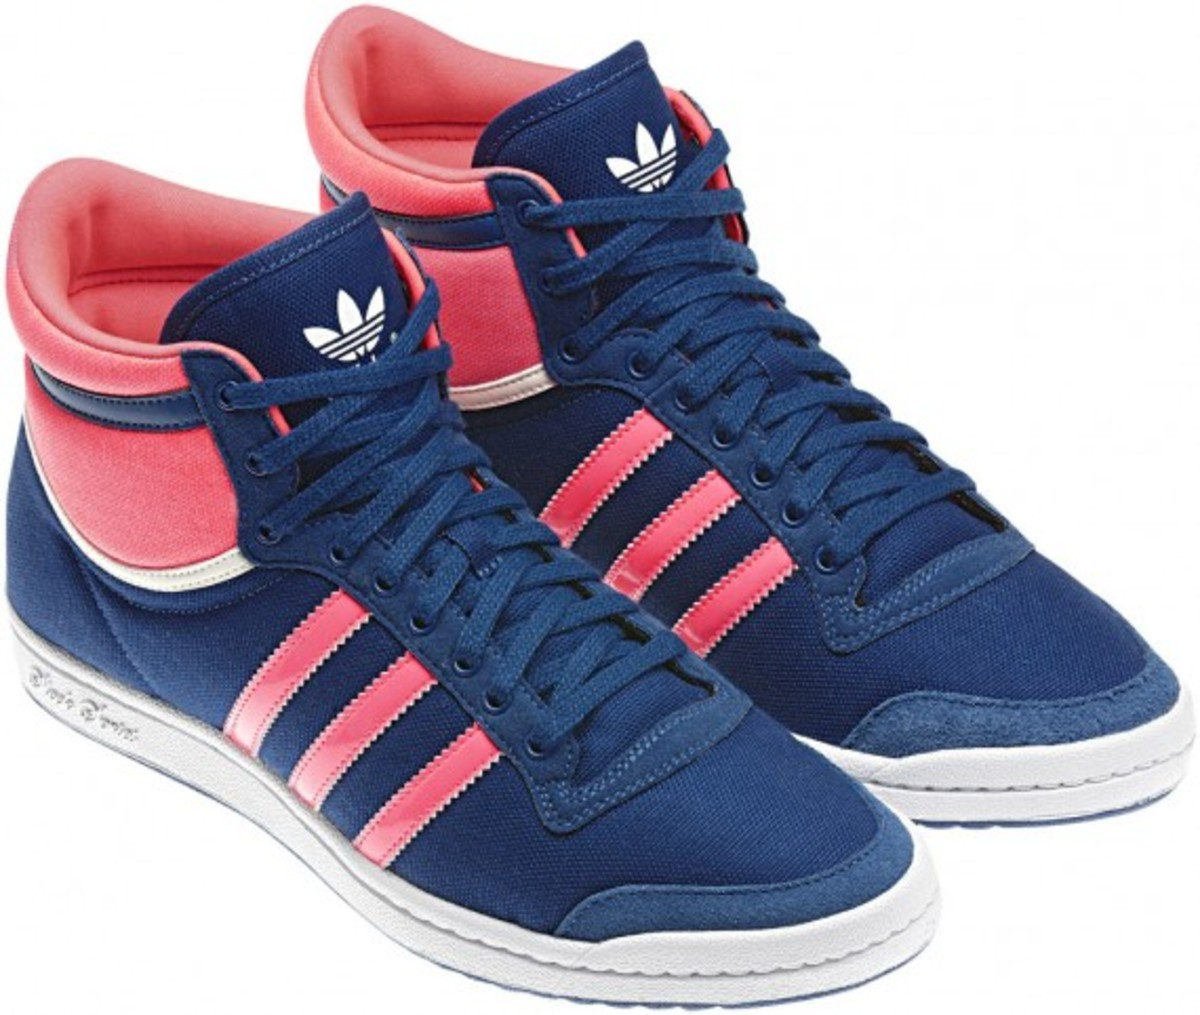 finest selection ca81c a4044 G46321 PRFTWPARA FI. adidas Originals - Women s Summer 2011 - Top Ten Hi  Sleek ...